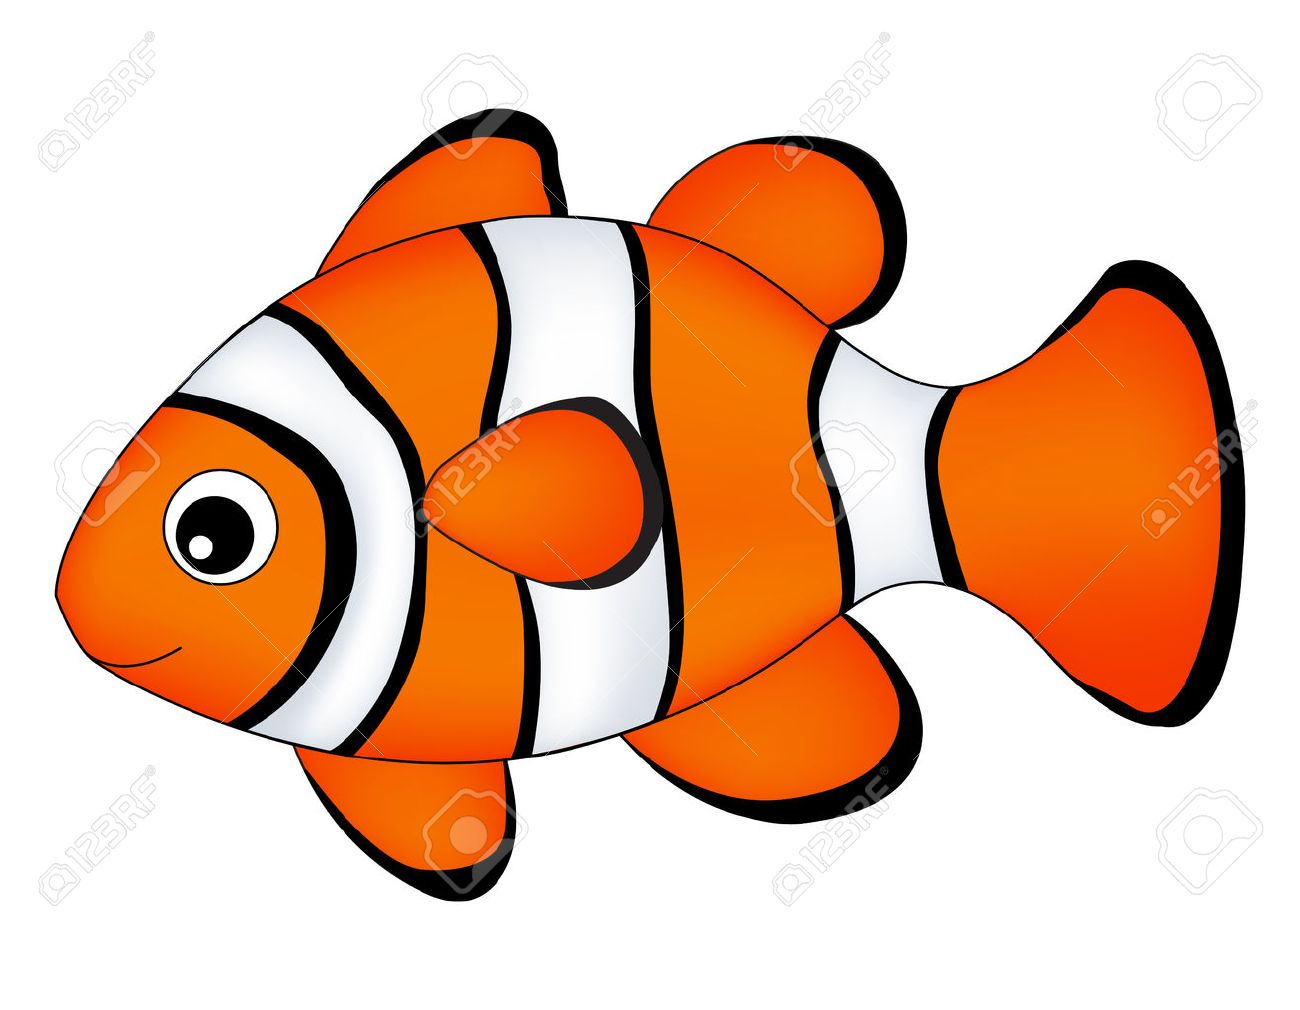 reef fish clown fish fish isolated on white background royalty rh 123rf com clown fish clipart black and white Seahorse Clip Art